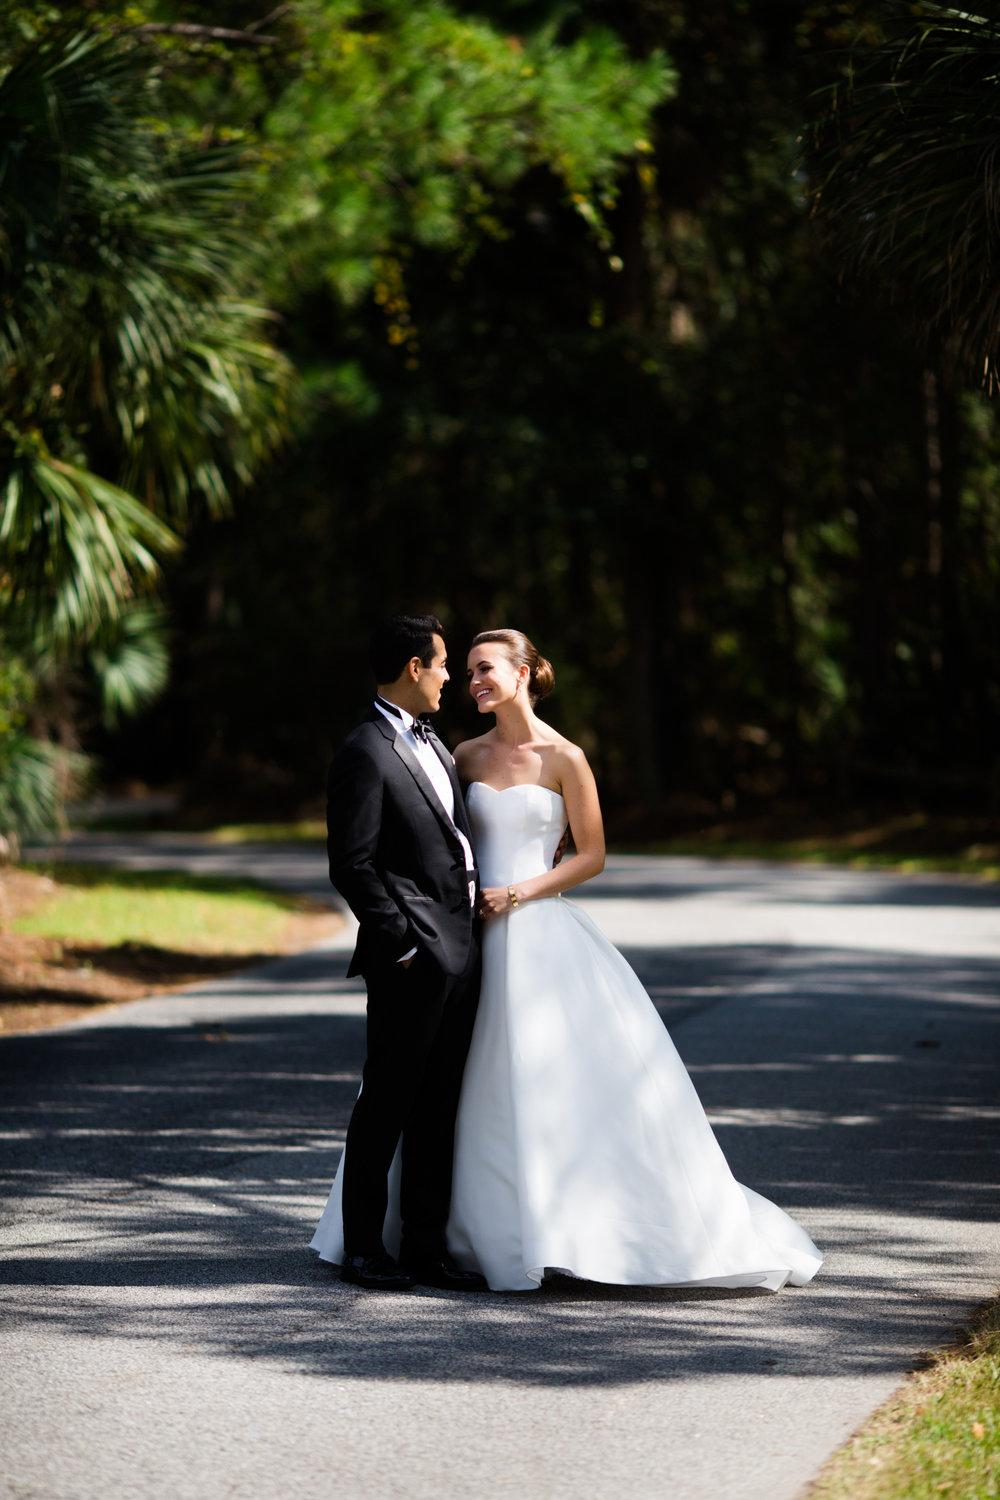 Romantic wedding photography in Charleston, SC